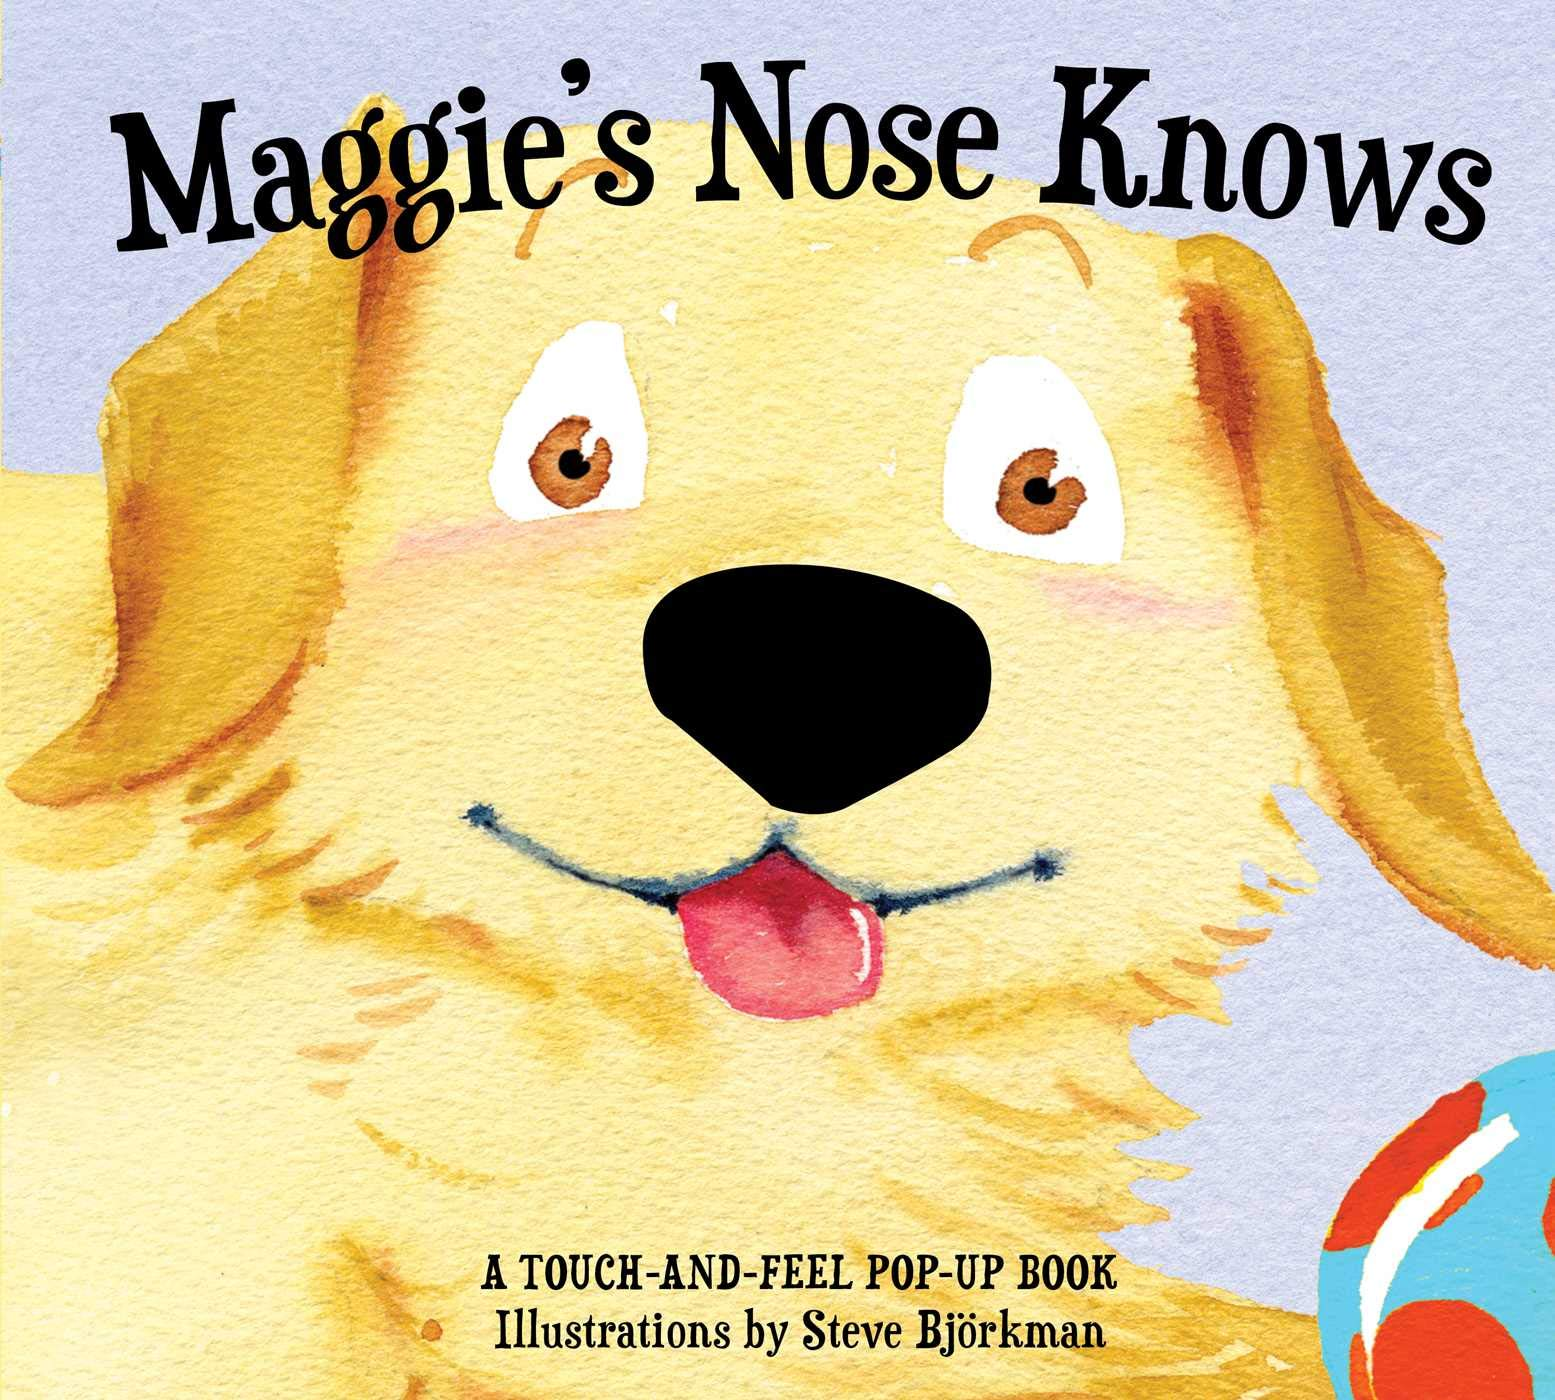 Amazon.com: Maggies Nose Knows: A Stunning Pop-Up Book ...